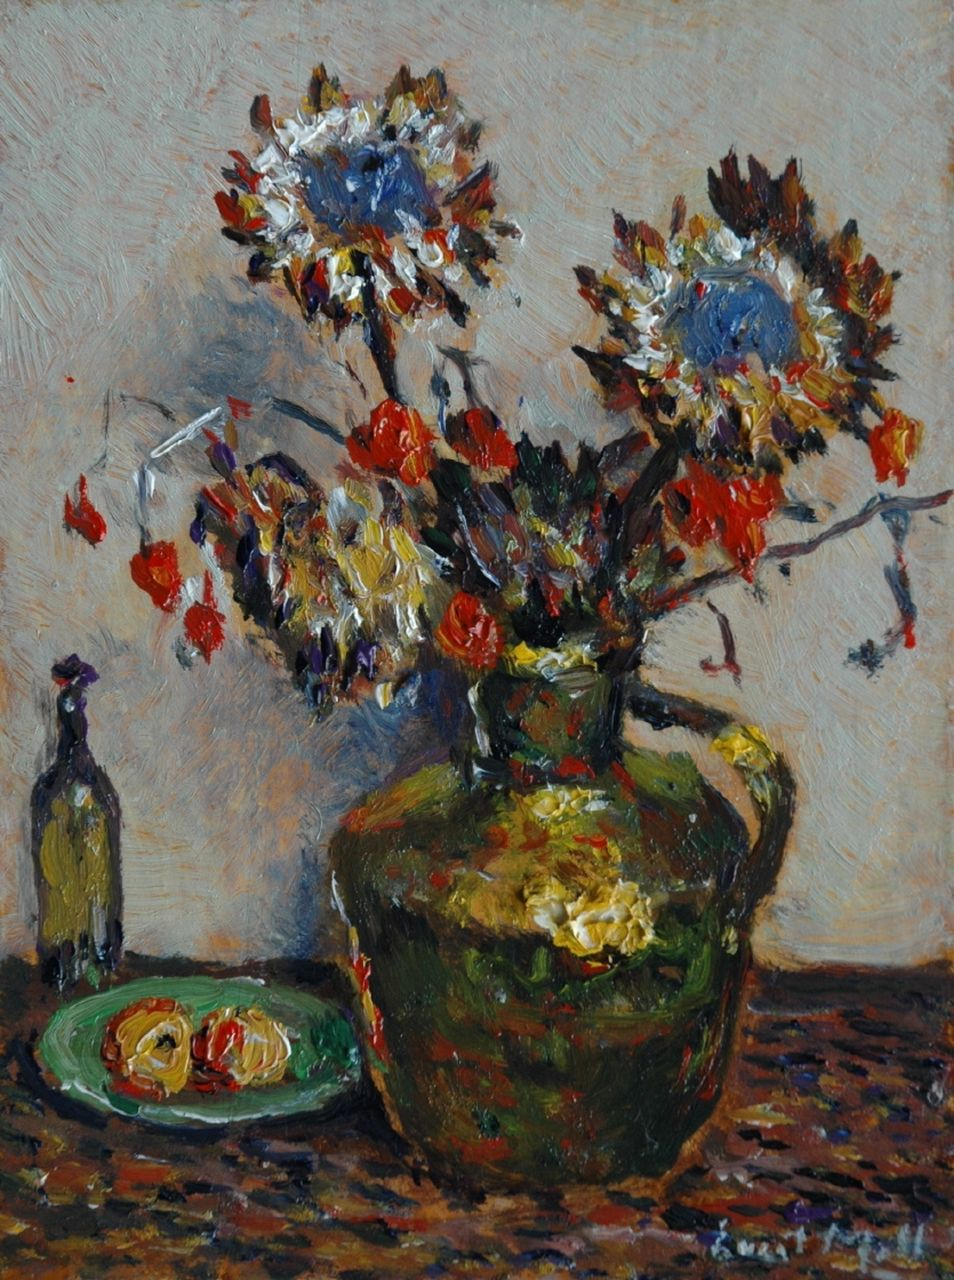 Moll E.  | Evert Moll, Flowers in a copper milk can, oil on panel 23.6 x 17.7 cm, signed l.r.